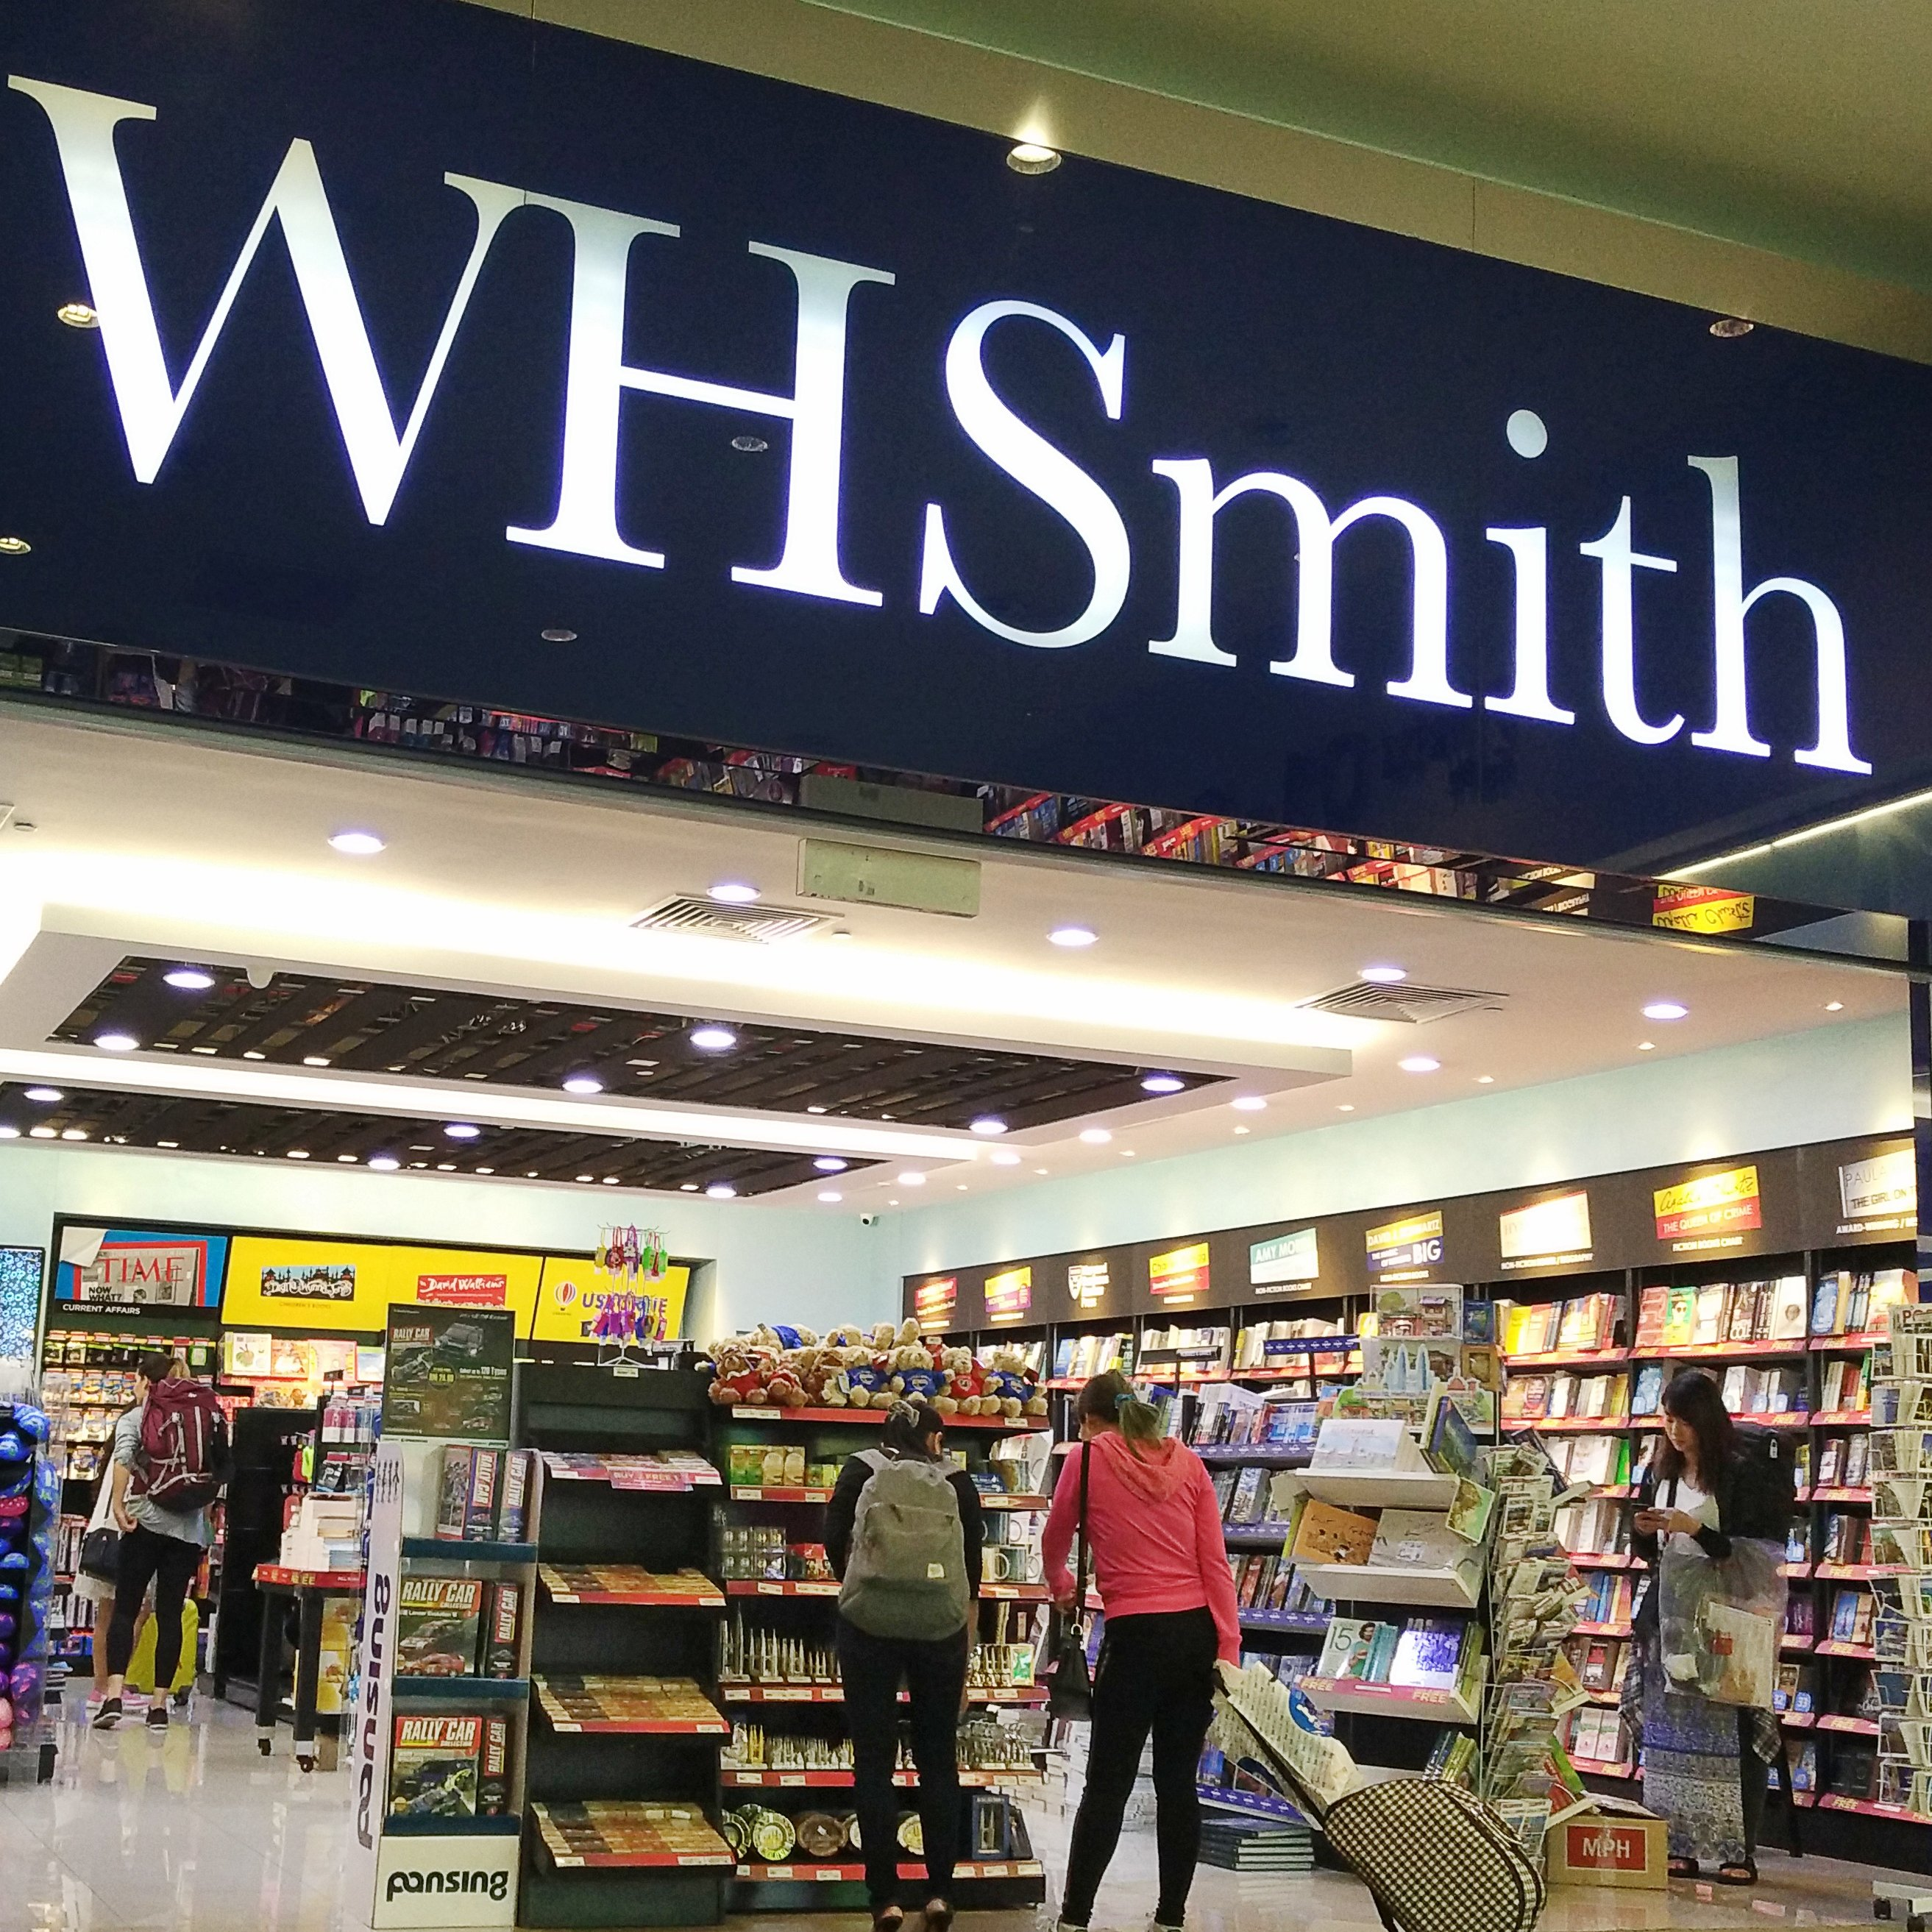 WHSmith blames 'stock error' after selling tax return guide with 2015 info